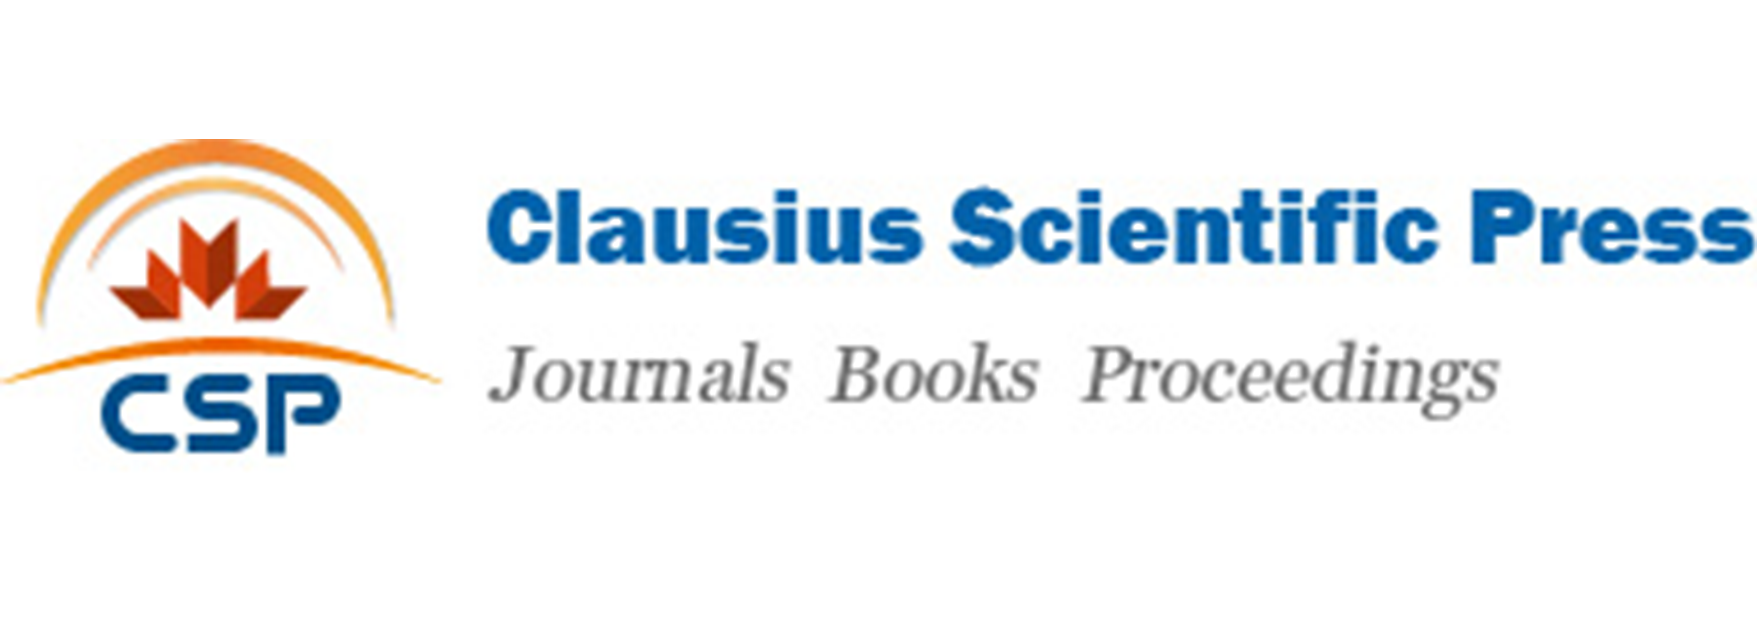 Clausius Scientific Press